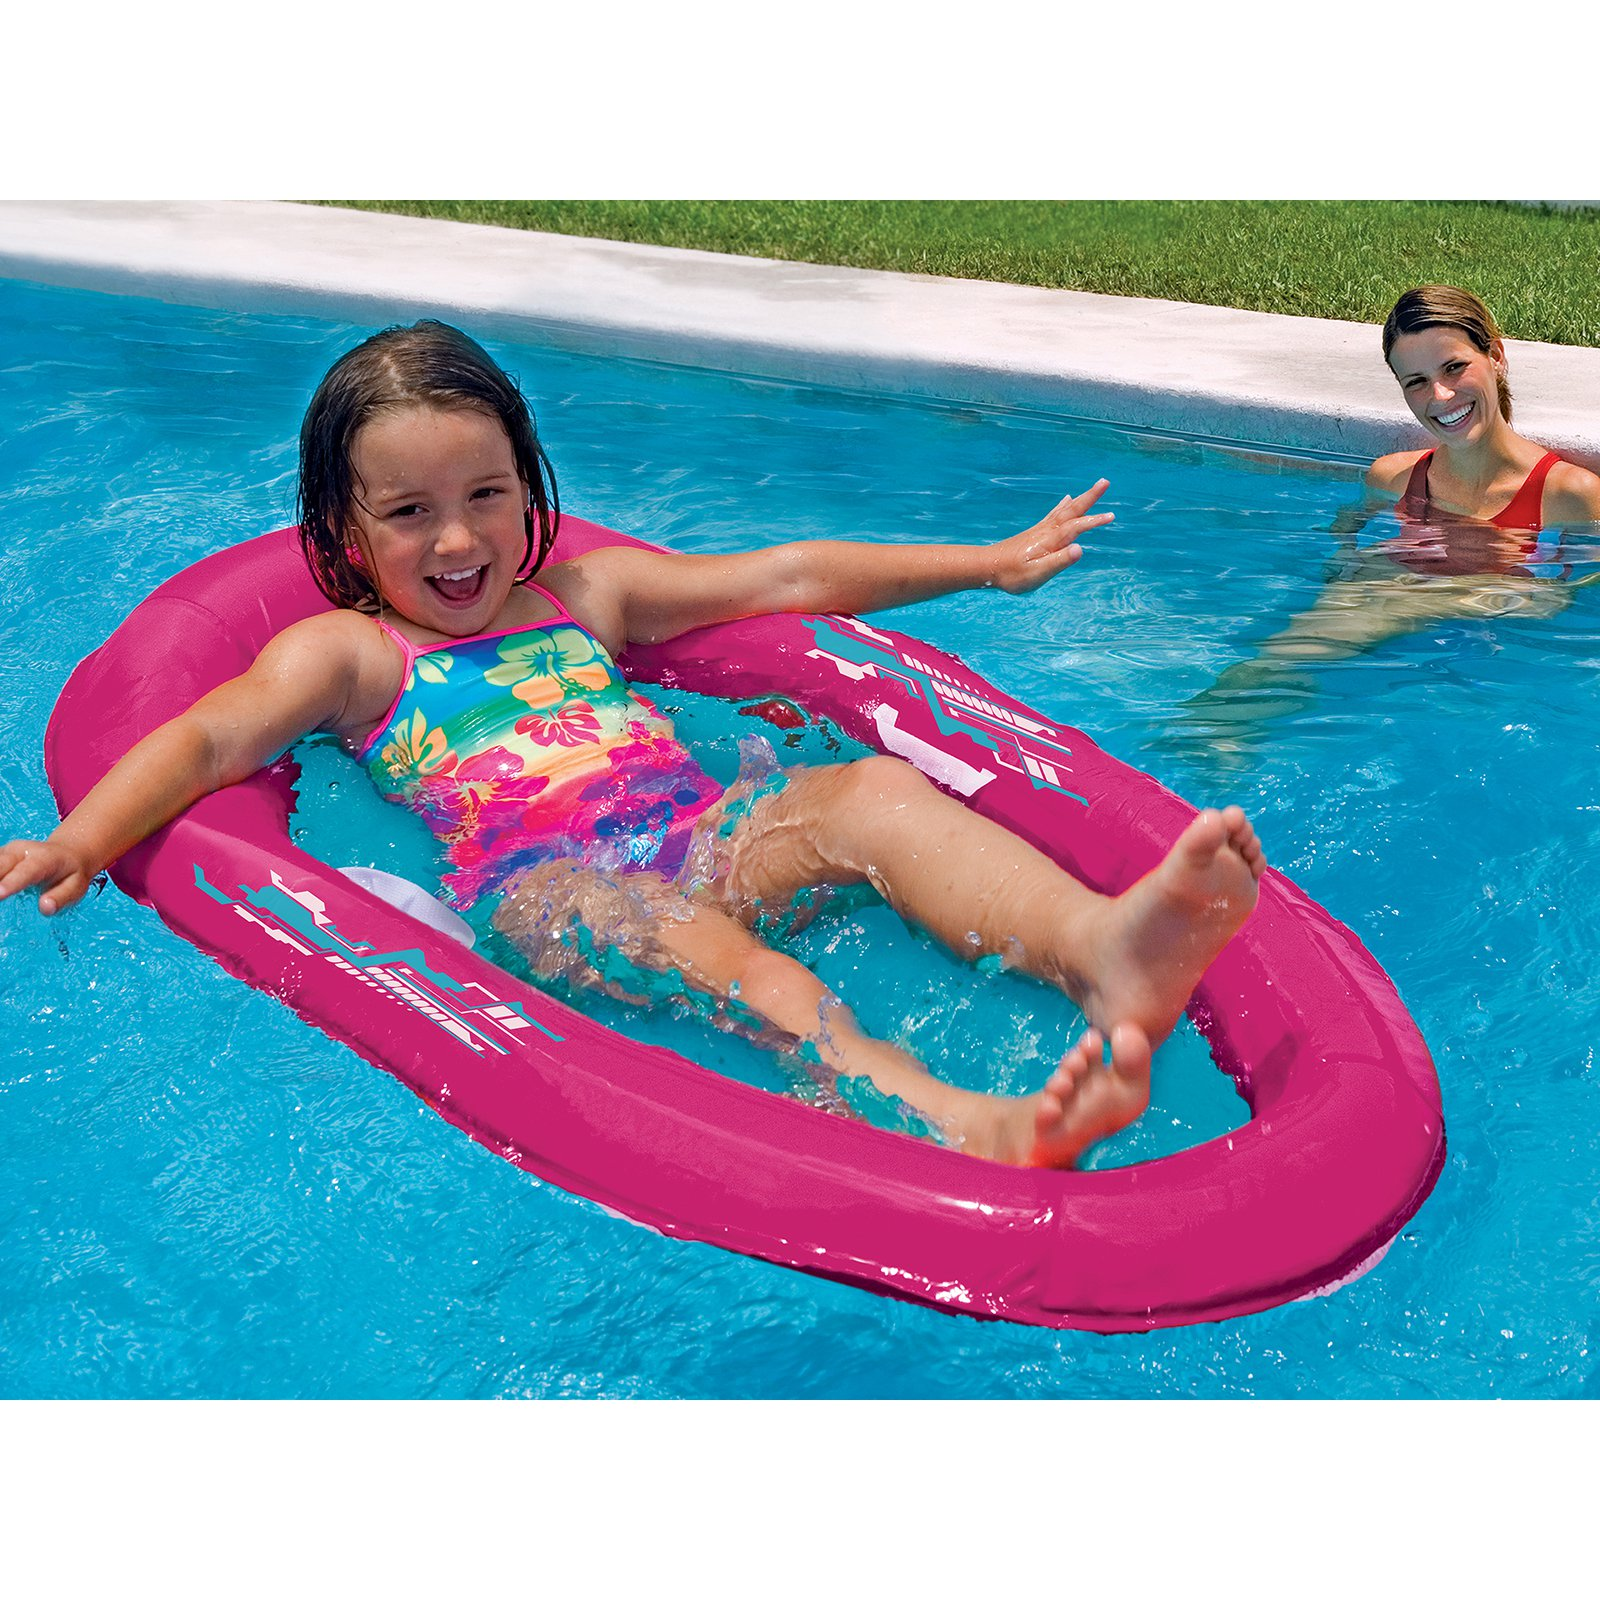 Simple Pool Floats For Kids B Intended Decor